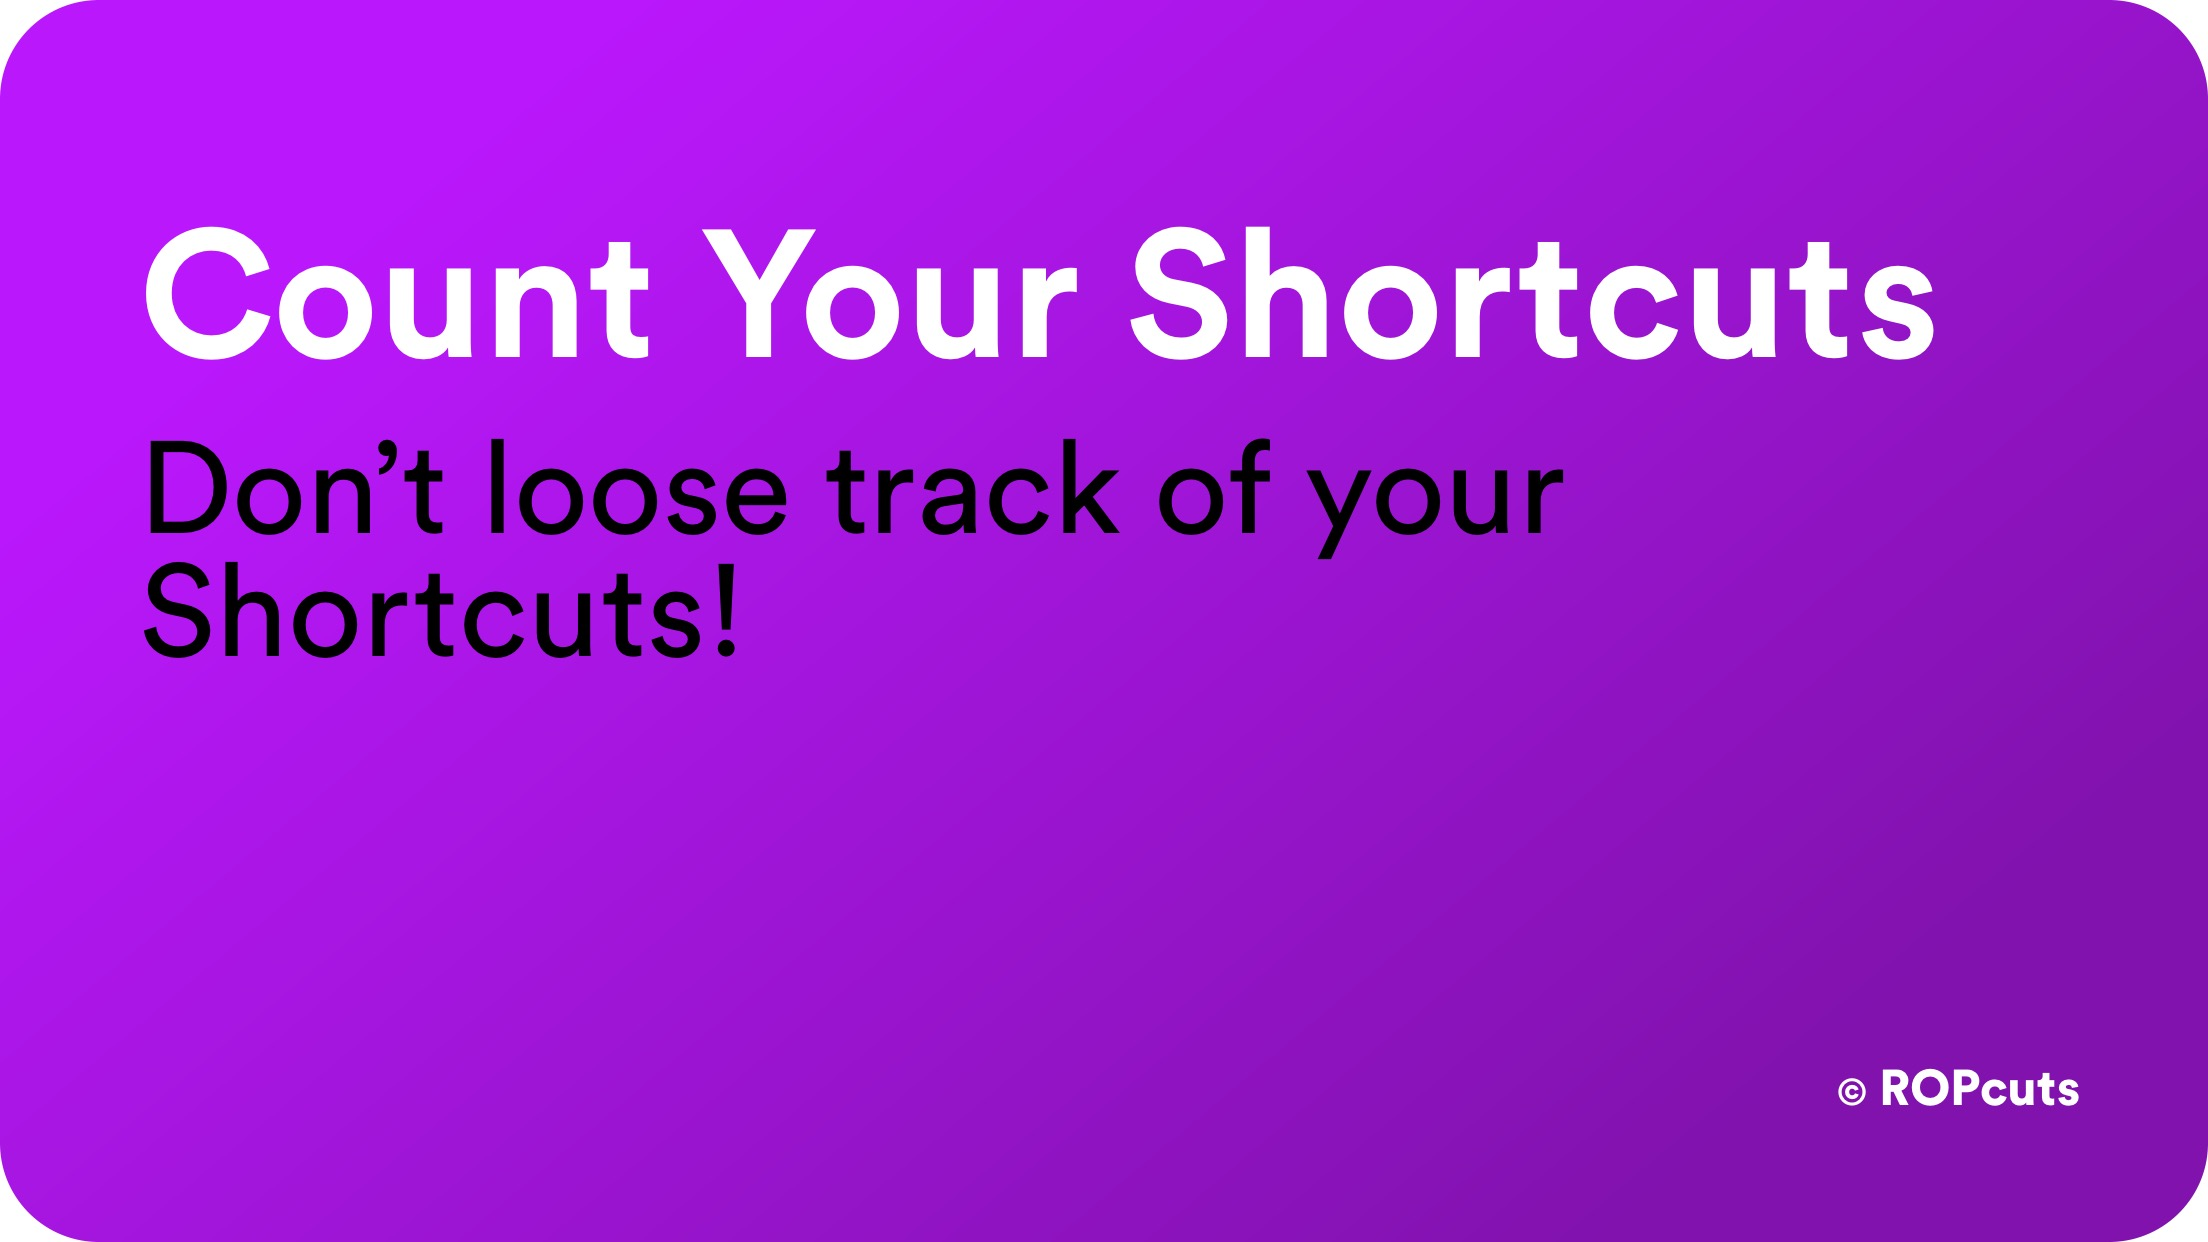 Count Your Shortcuts